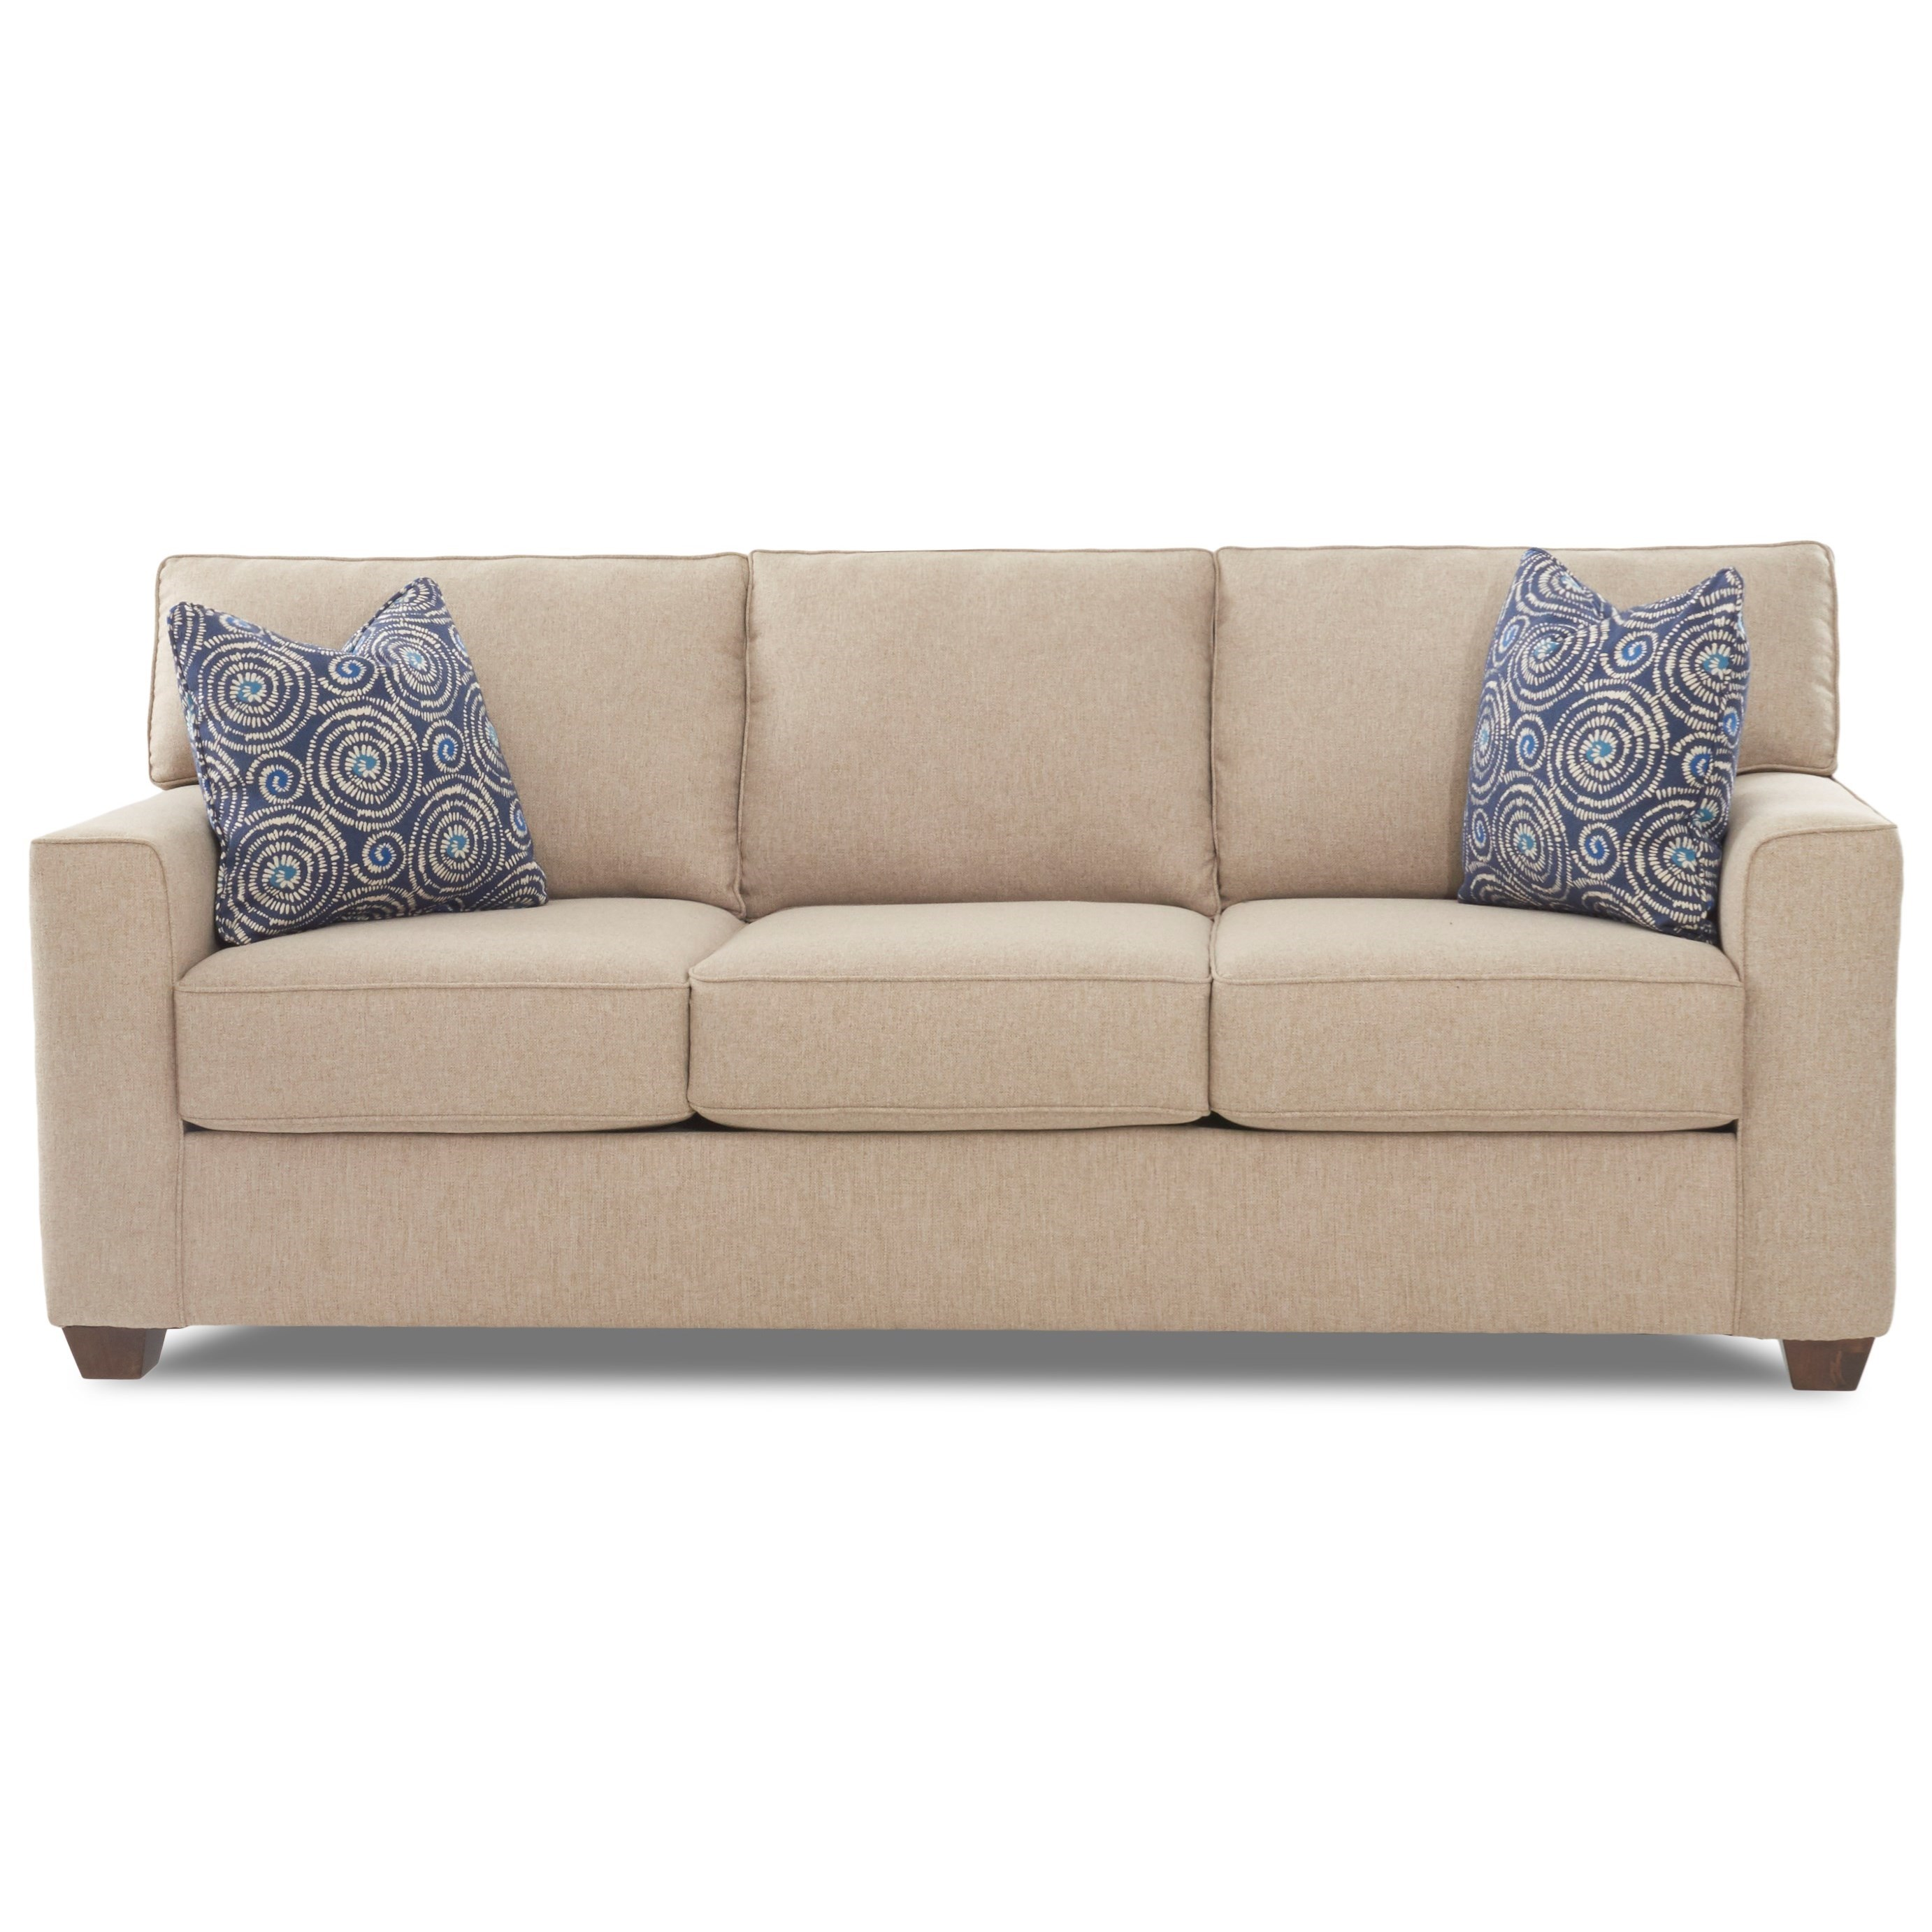 Nolan Queen Dreamquest Sleeper Sofa by Klaussner at H.L. Stephens